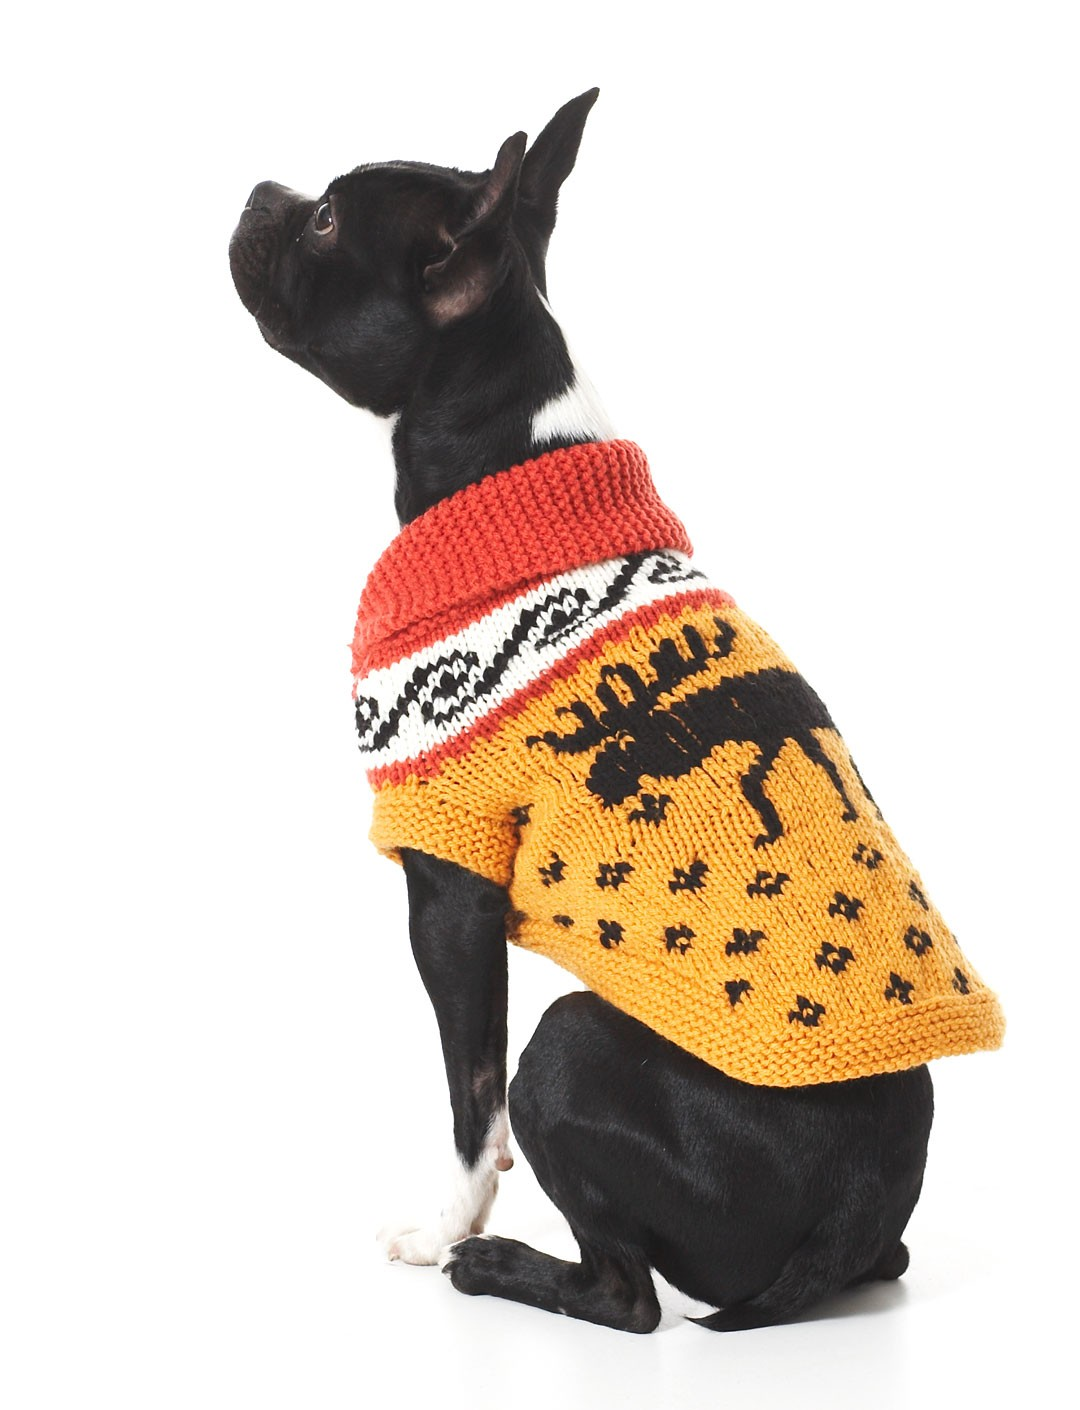 Dogs Knitted Coats Free Patterns : Bernat Cowichan Style Dog Coat, Knit Pattern Yarnspirations